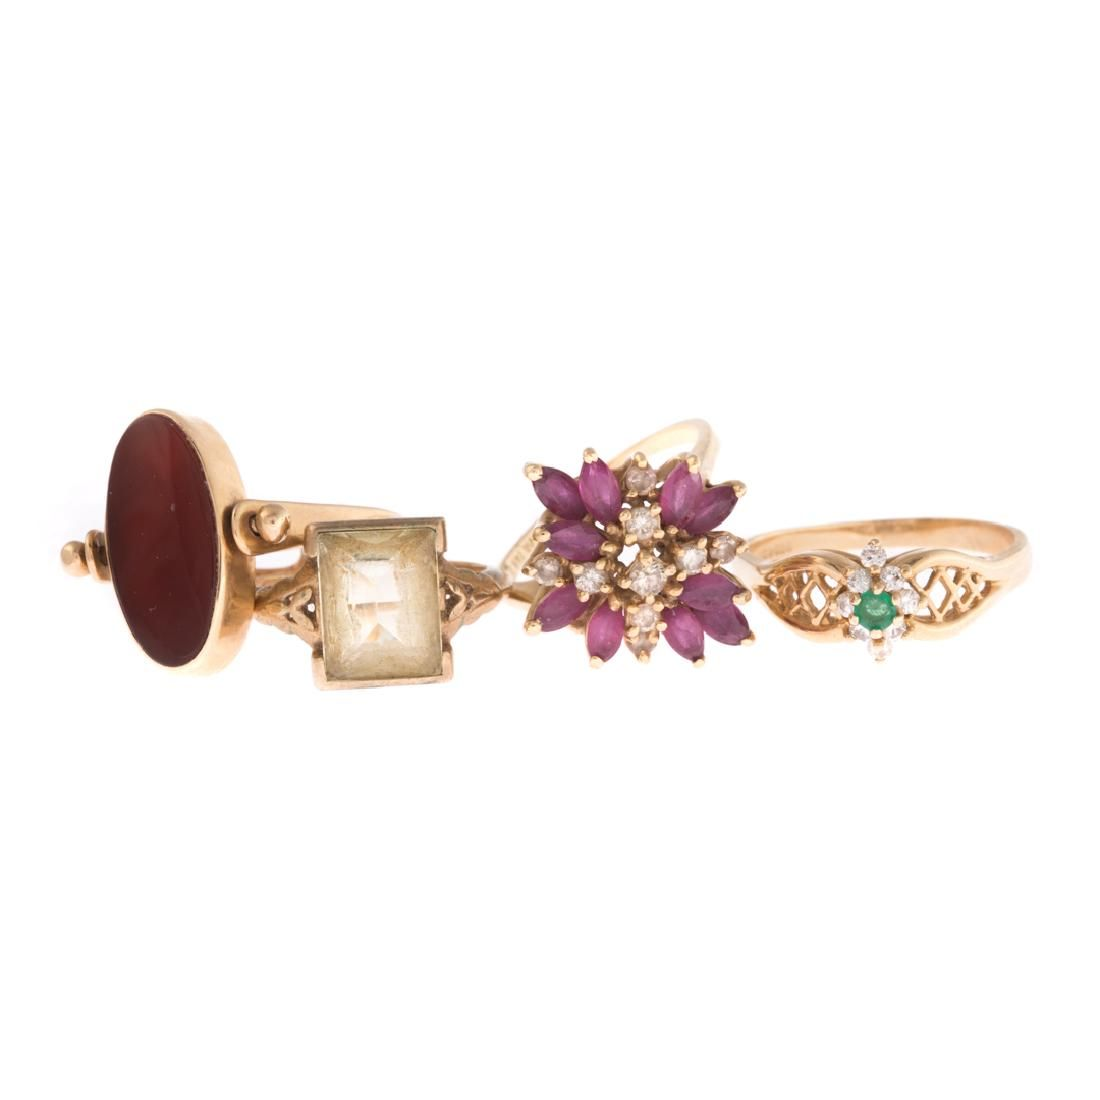 Four Lady's Gemstone Rings in Gold